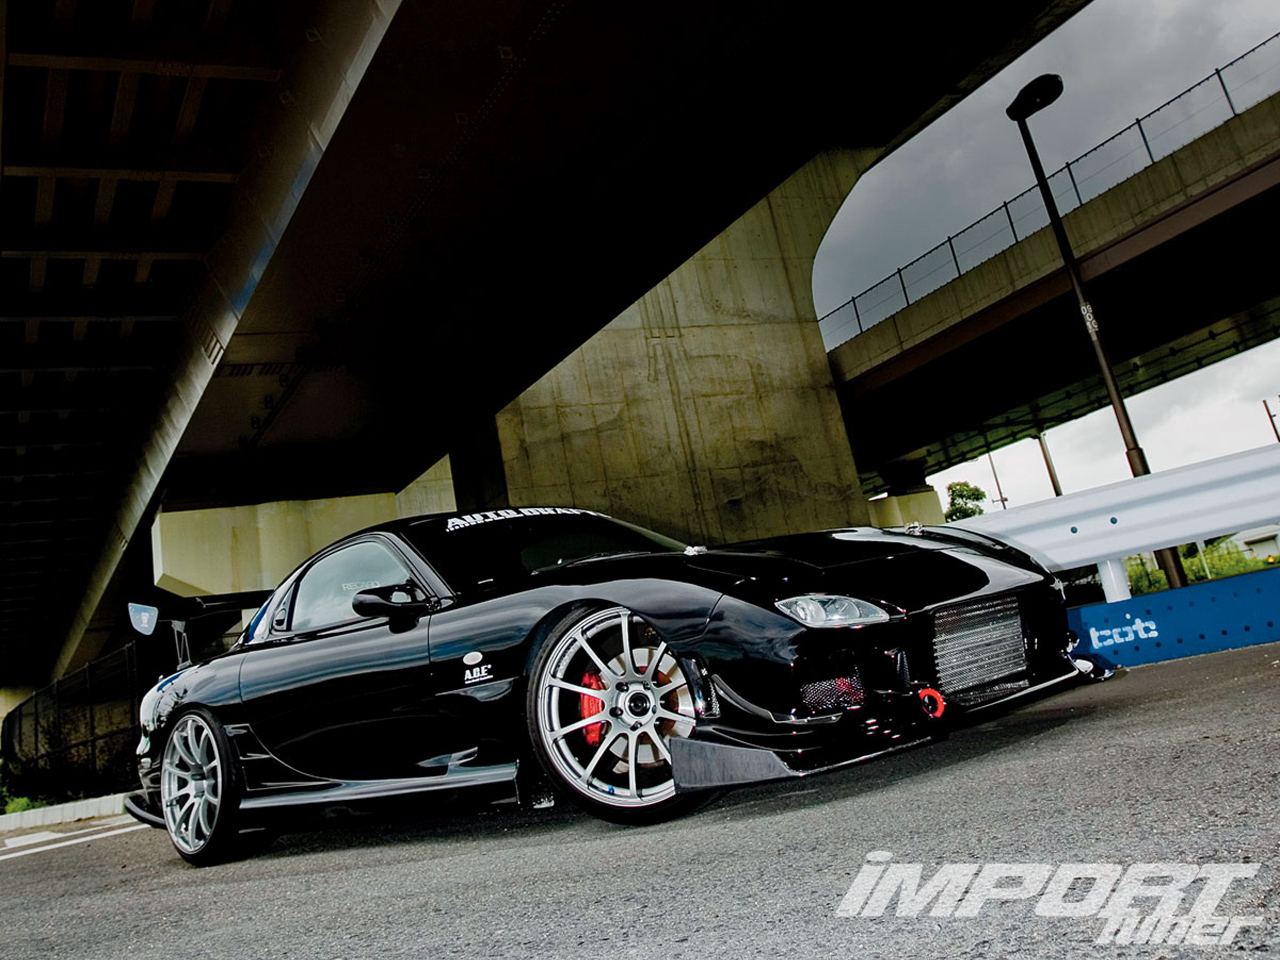 Best Tuner Cars >> Download Tuner Wallpaper Gallery